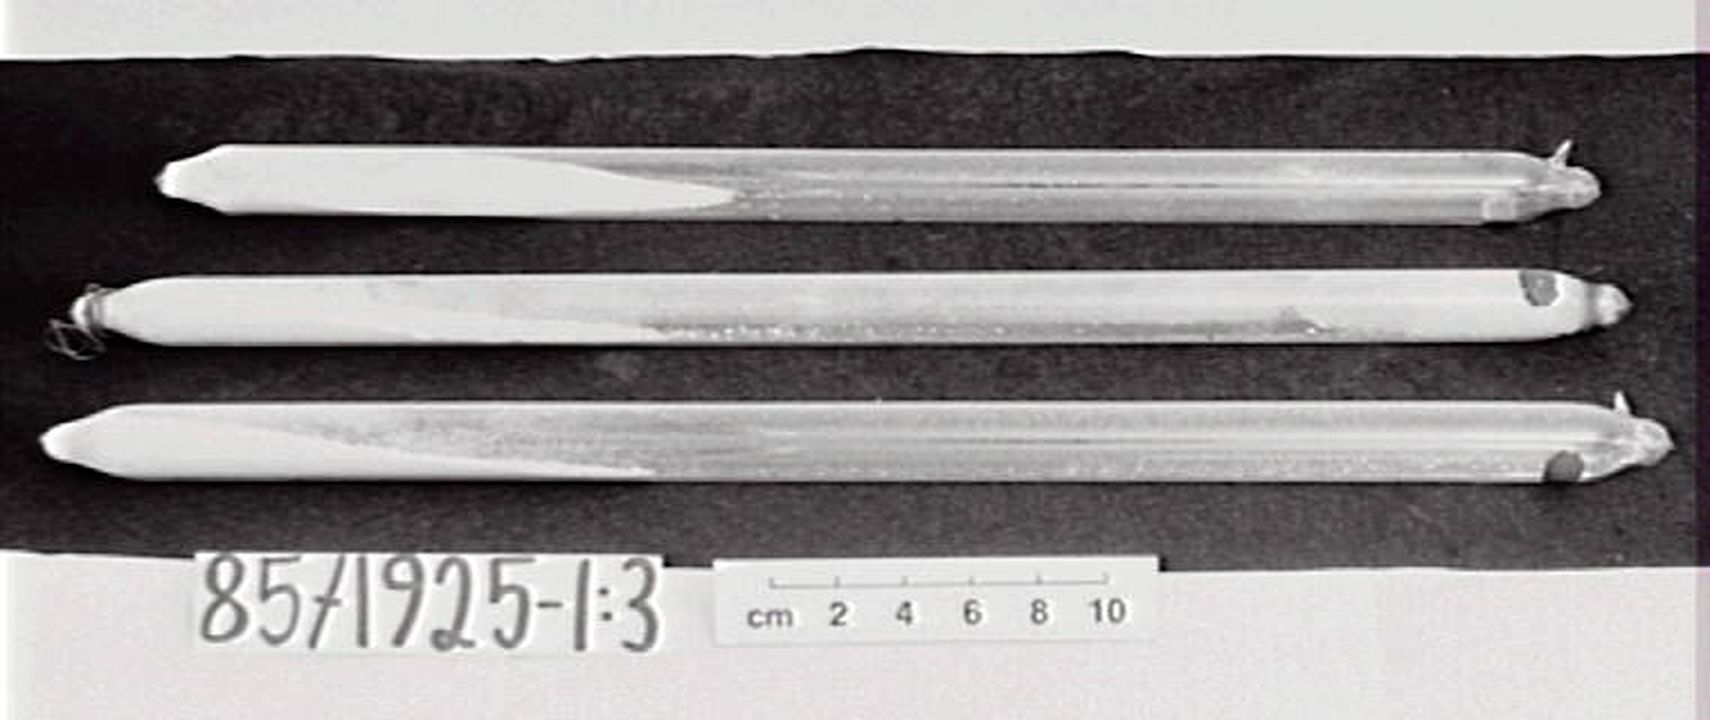 85/1925 Discharge tubes (3), glass, (containing powders), used at Sydney Observatory. Click to enlarge.